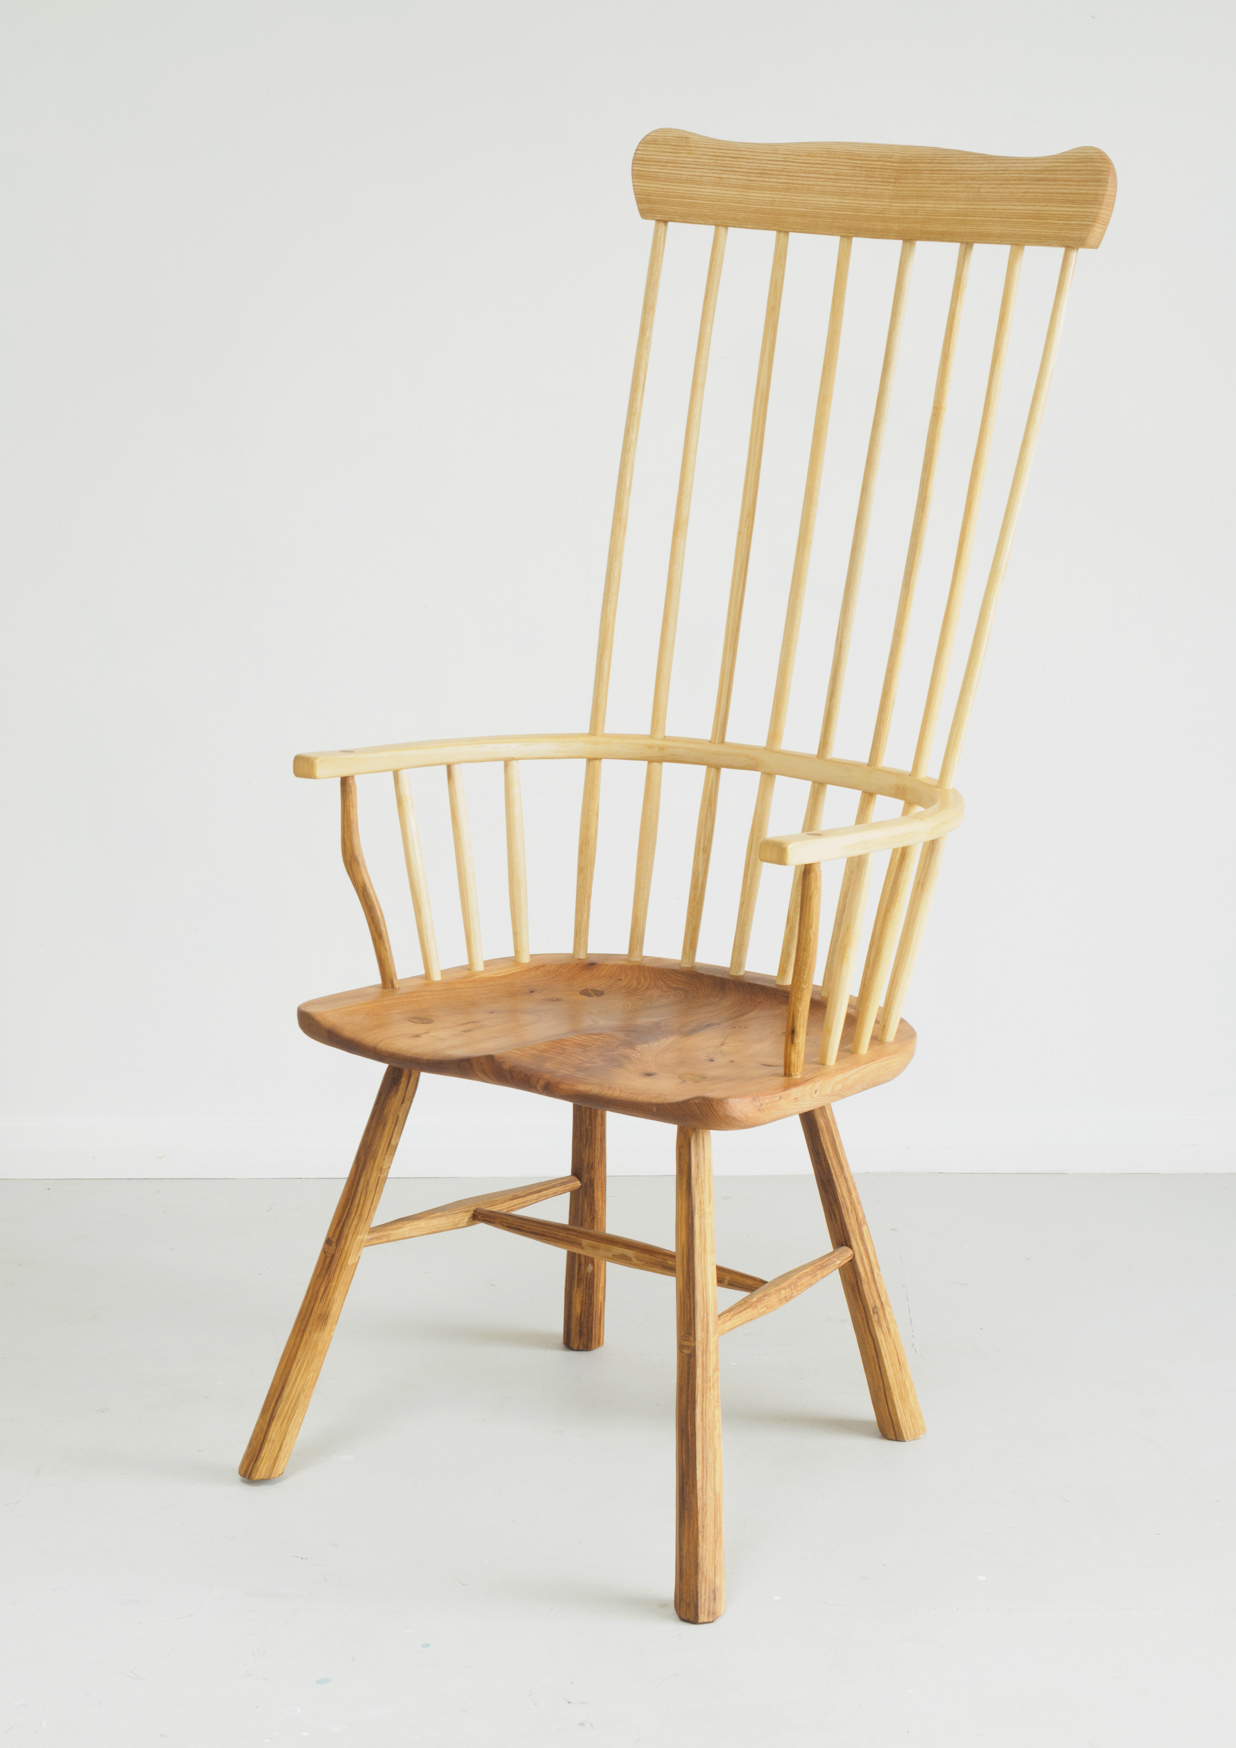 John Brown Cardigan style welsh stick chair